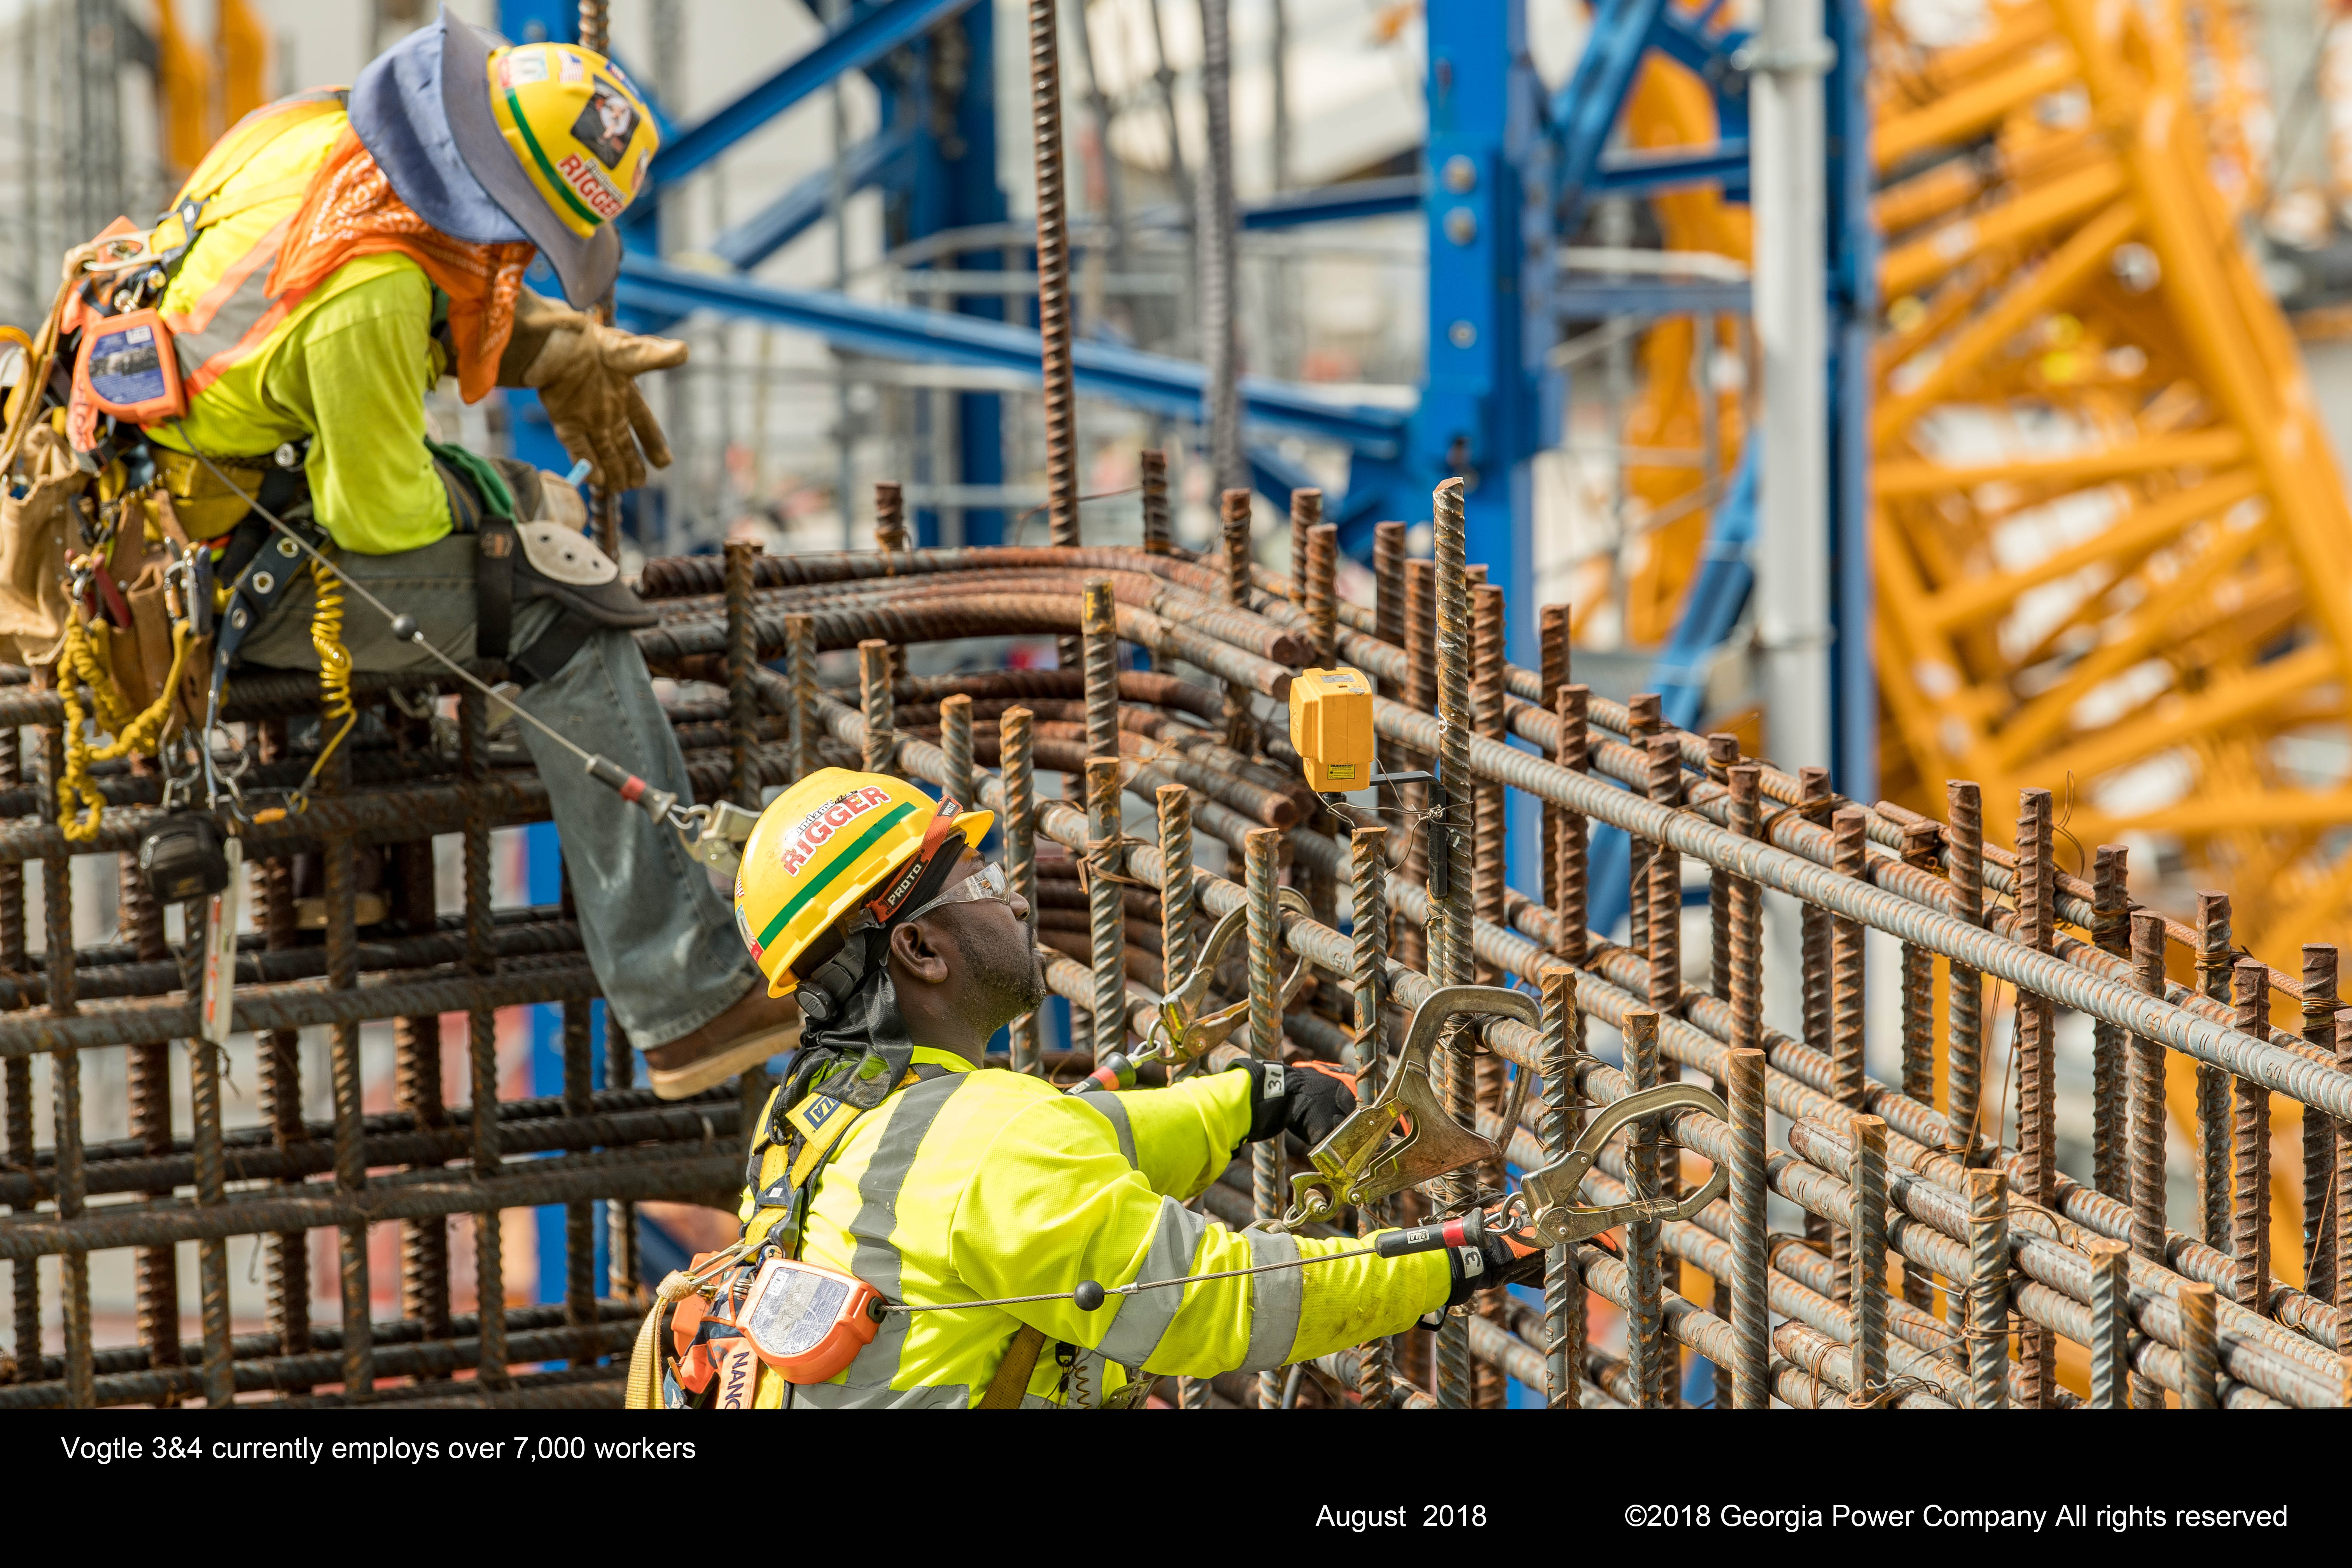 Vogtle 3 and 4 currently employs over 7,000 workers